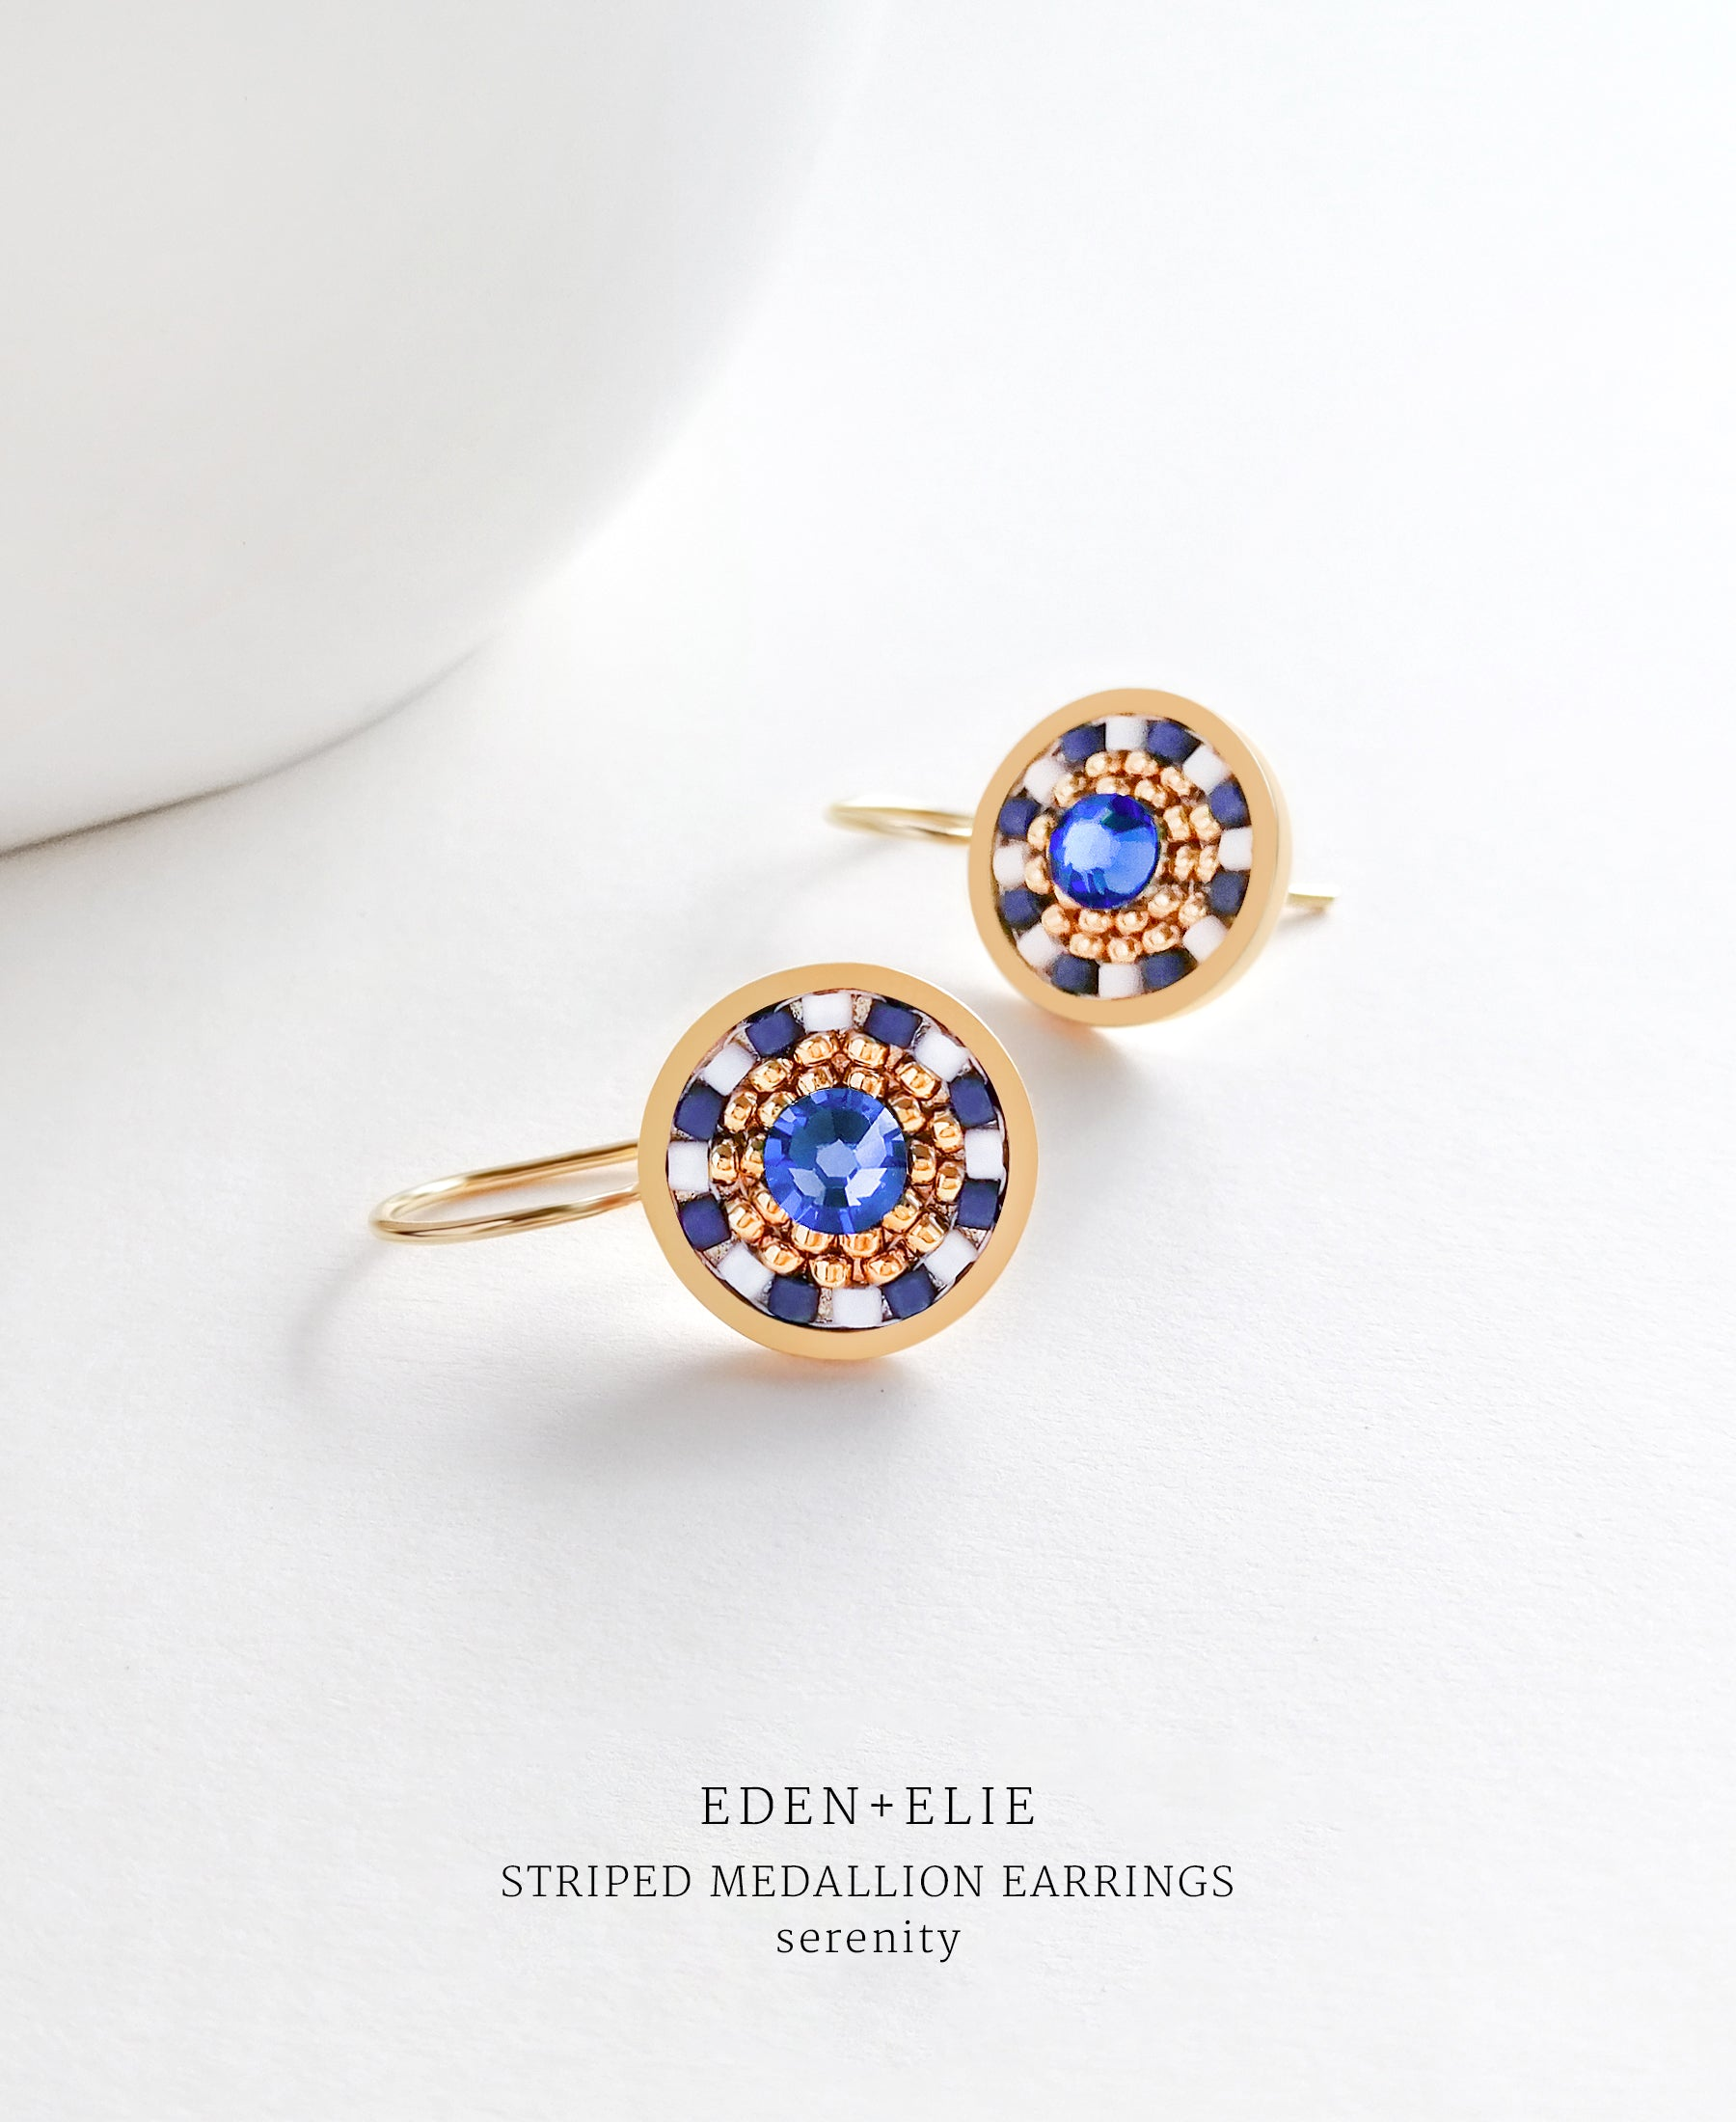 EDEN + ELIE Striped Medallion drop earrings - serenity